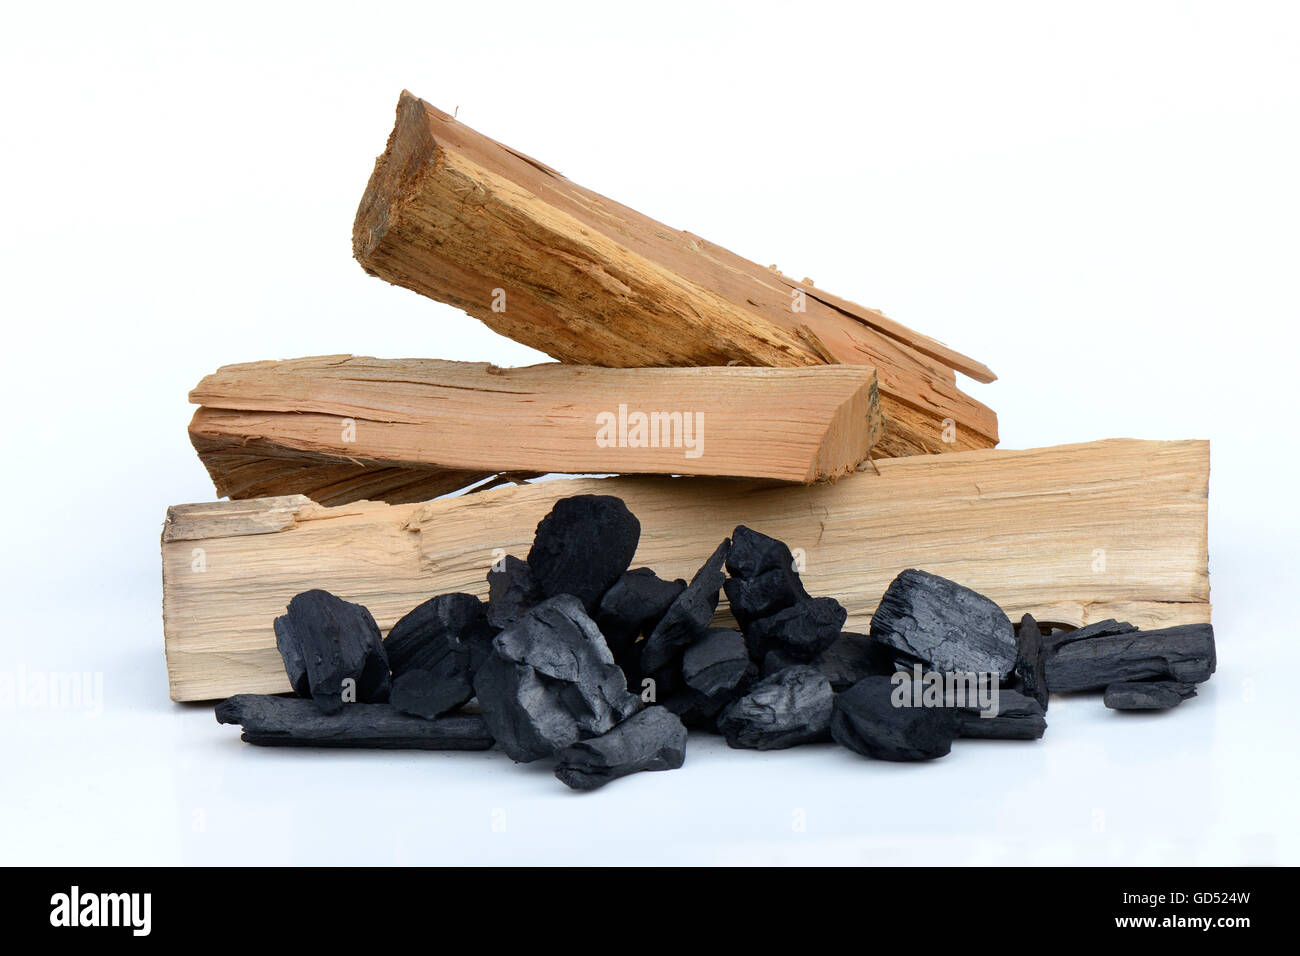 Fire wood and charcoal - Stock Image